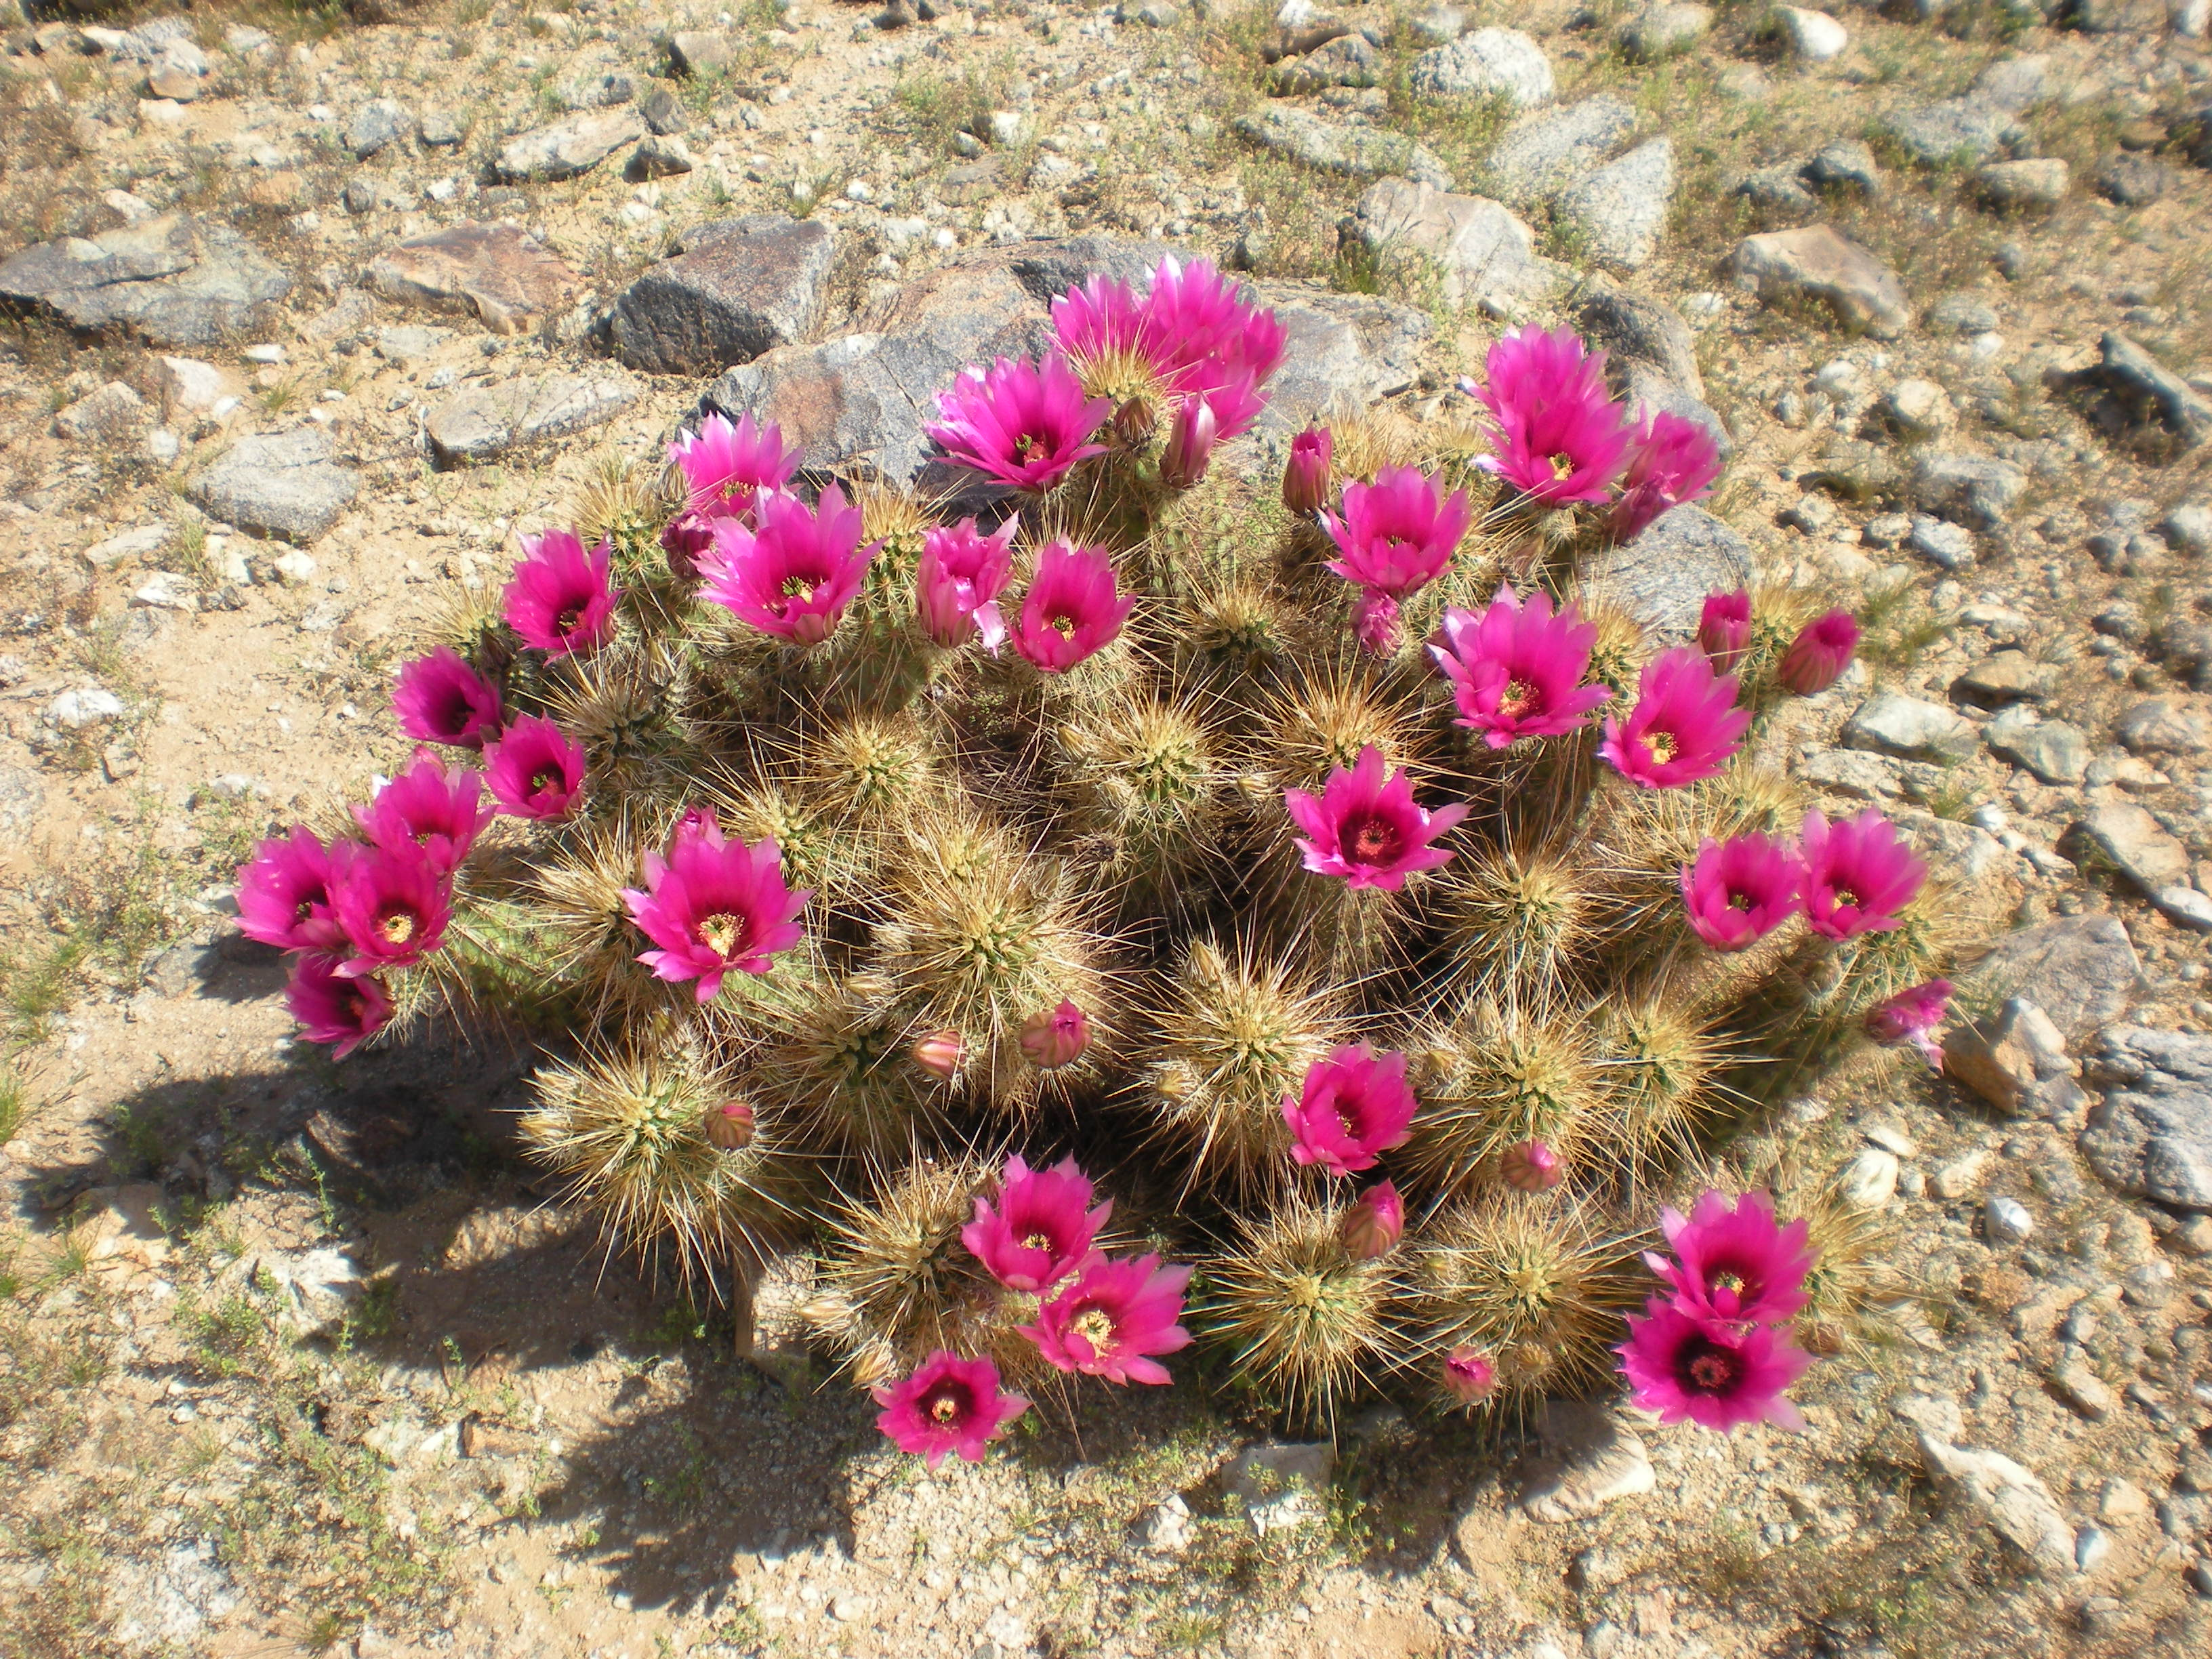 Hedgehog Cactus in bloom!